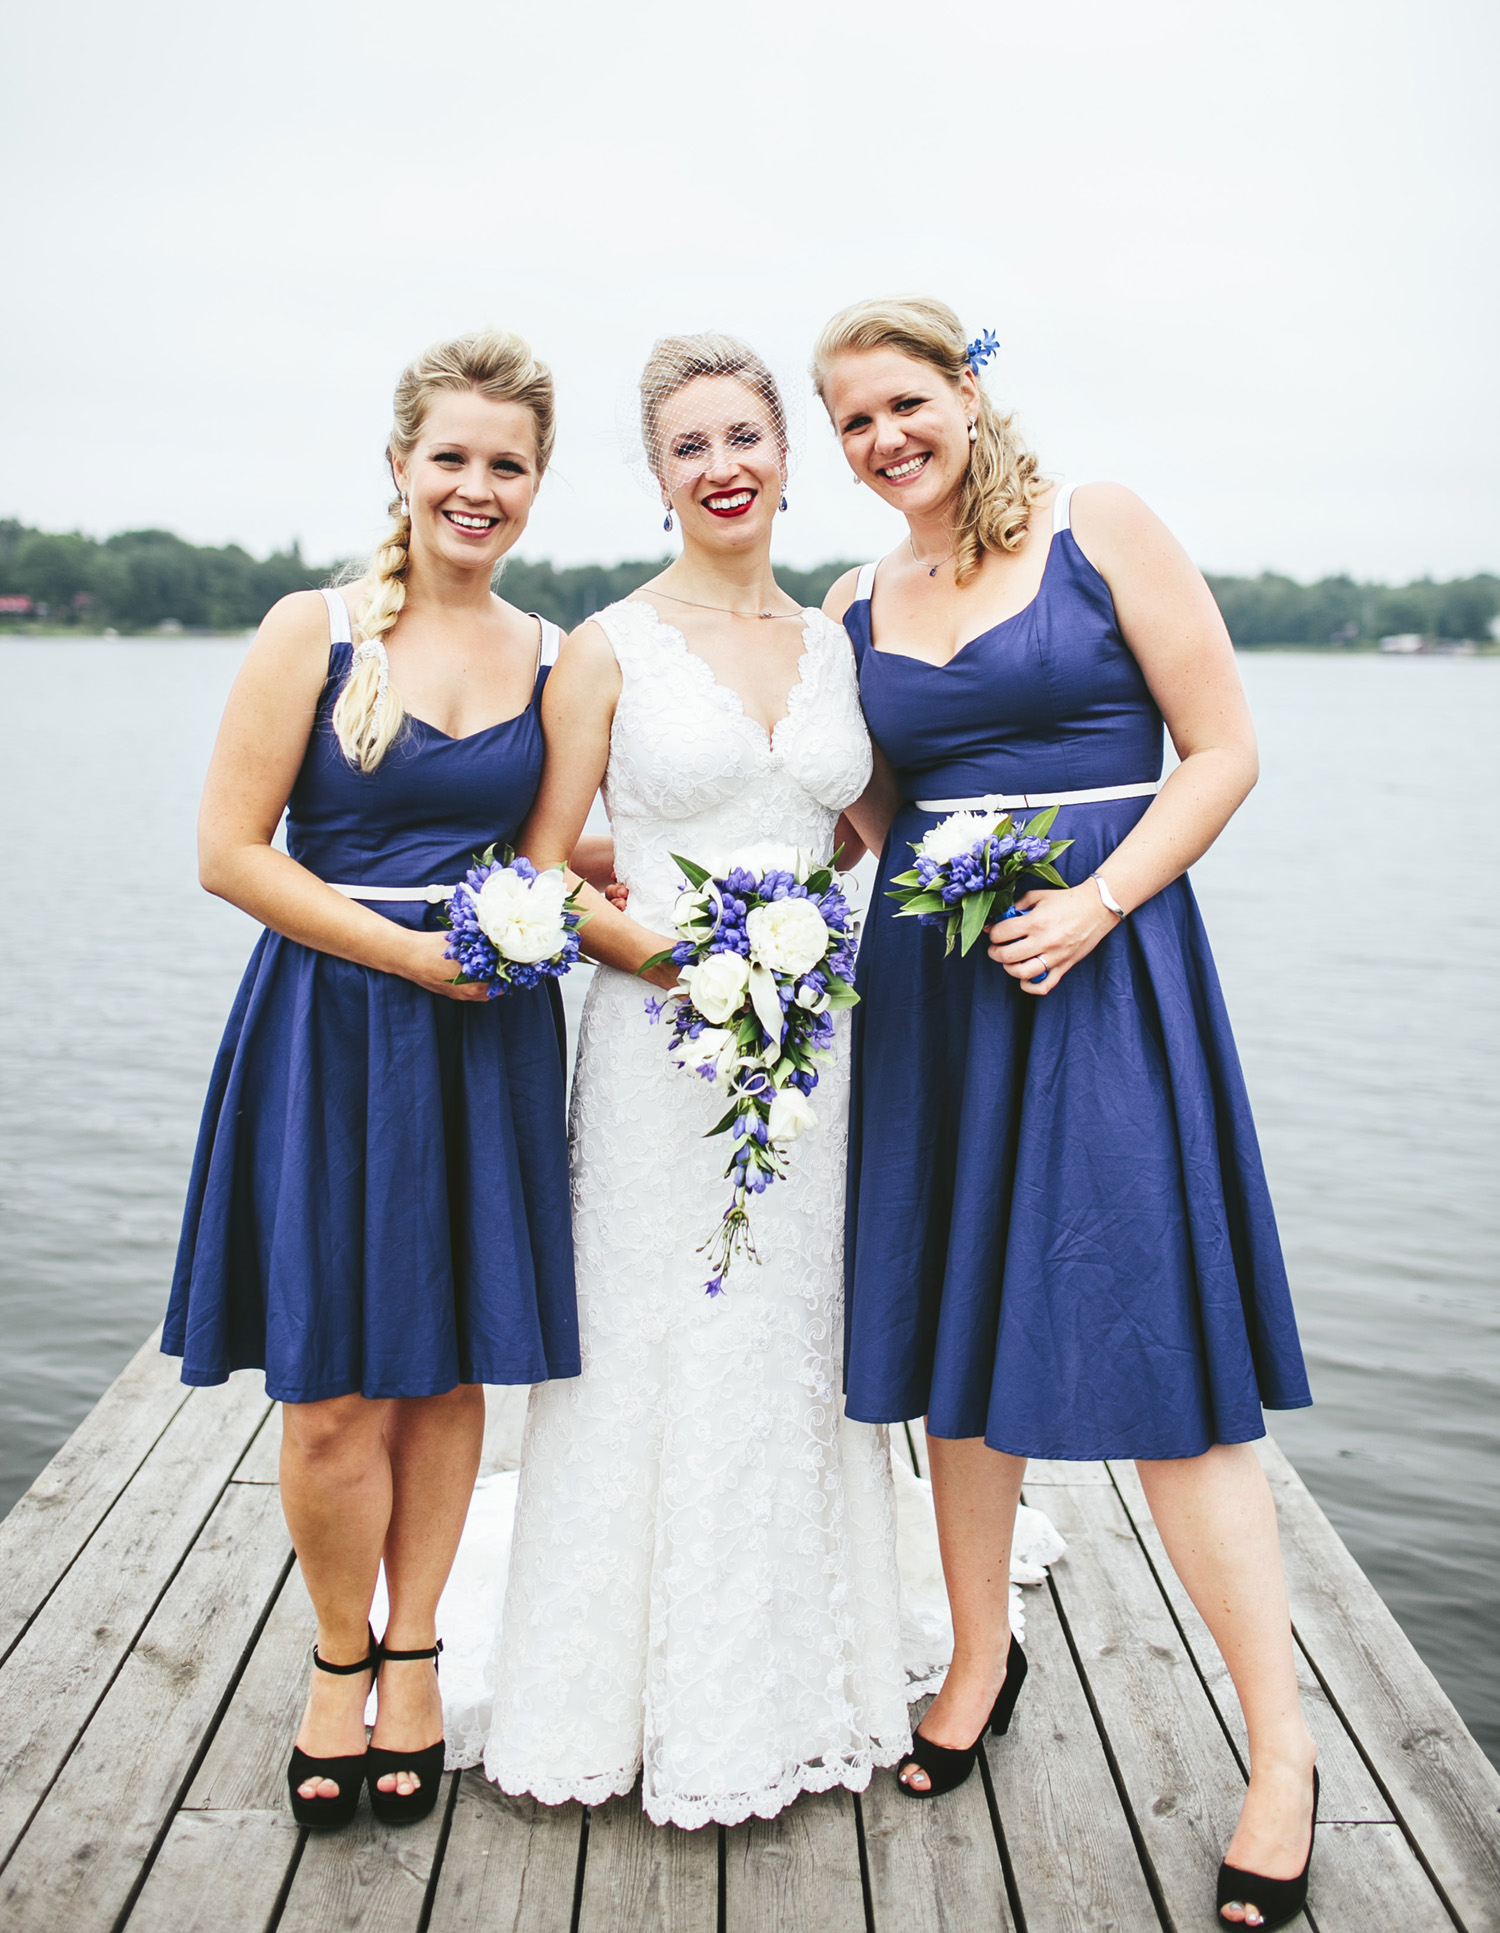 Brandon_werth_Sweden_wedding_Photographer_baltic_sea_52.jpg